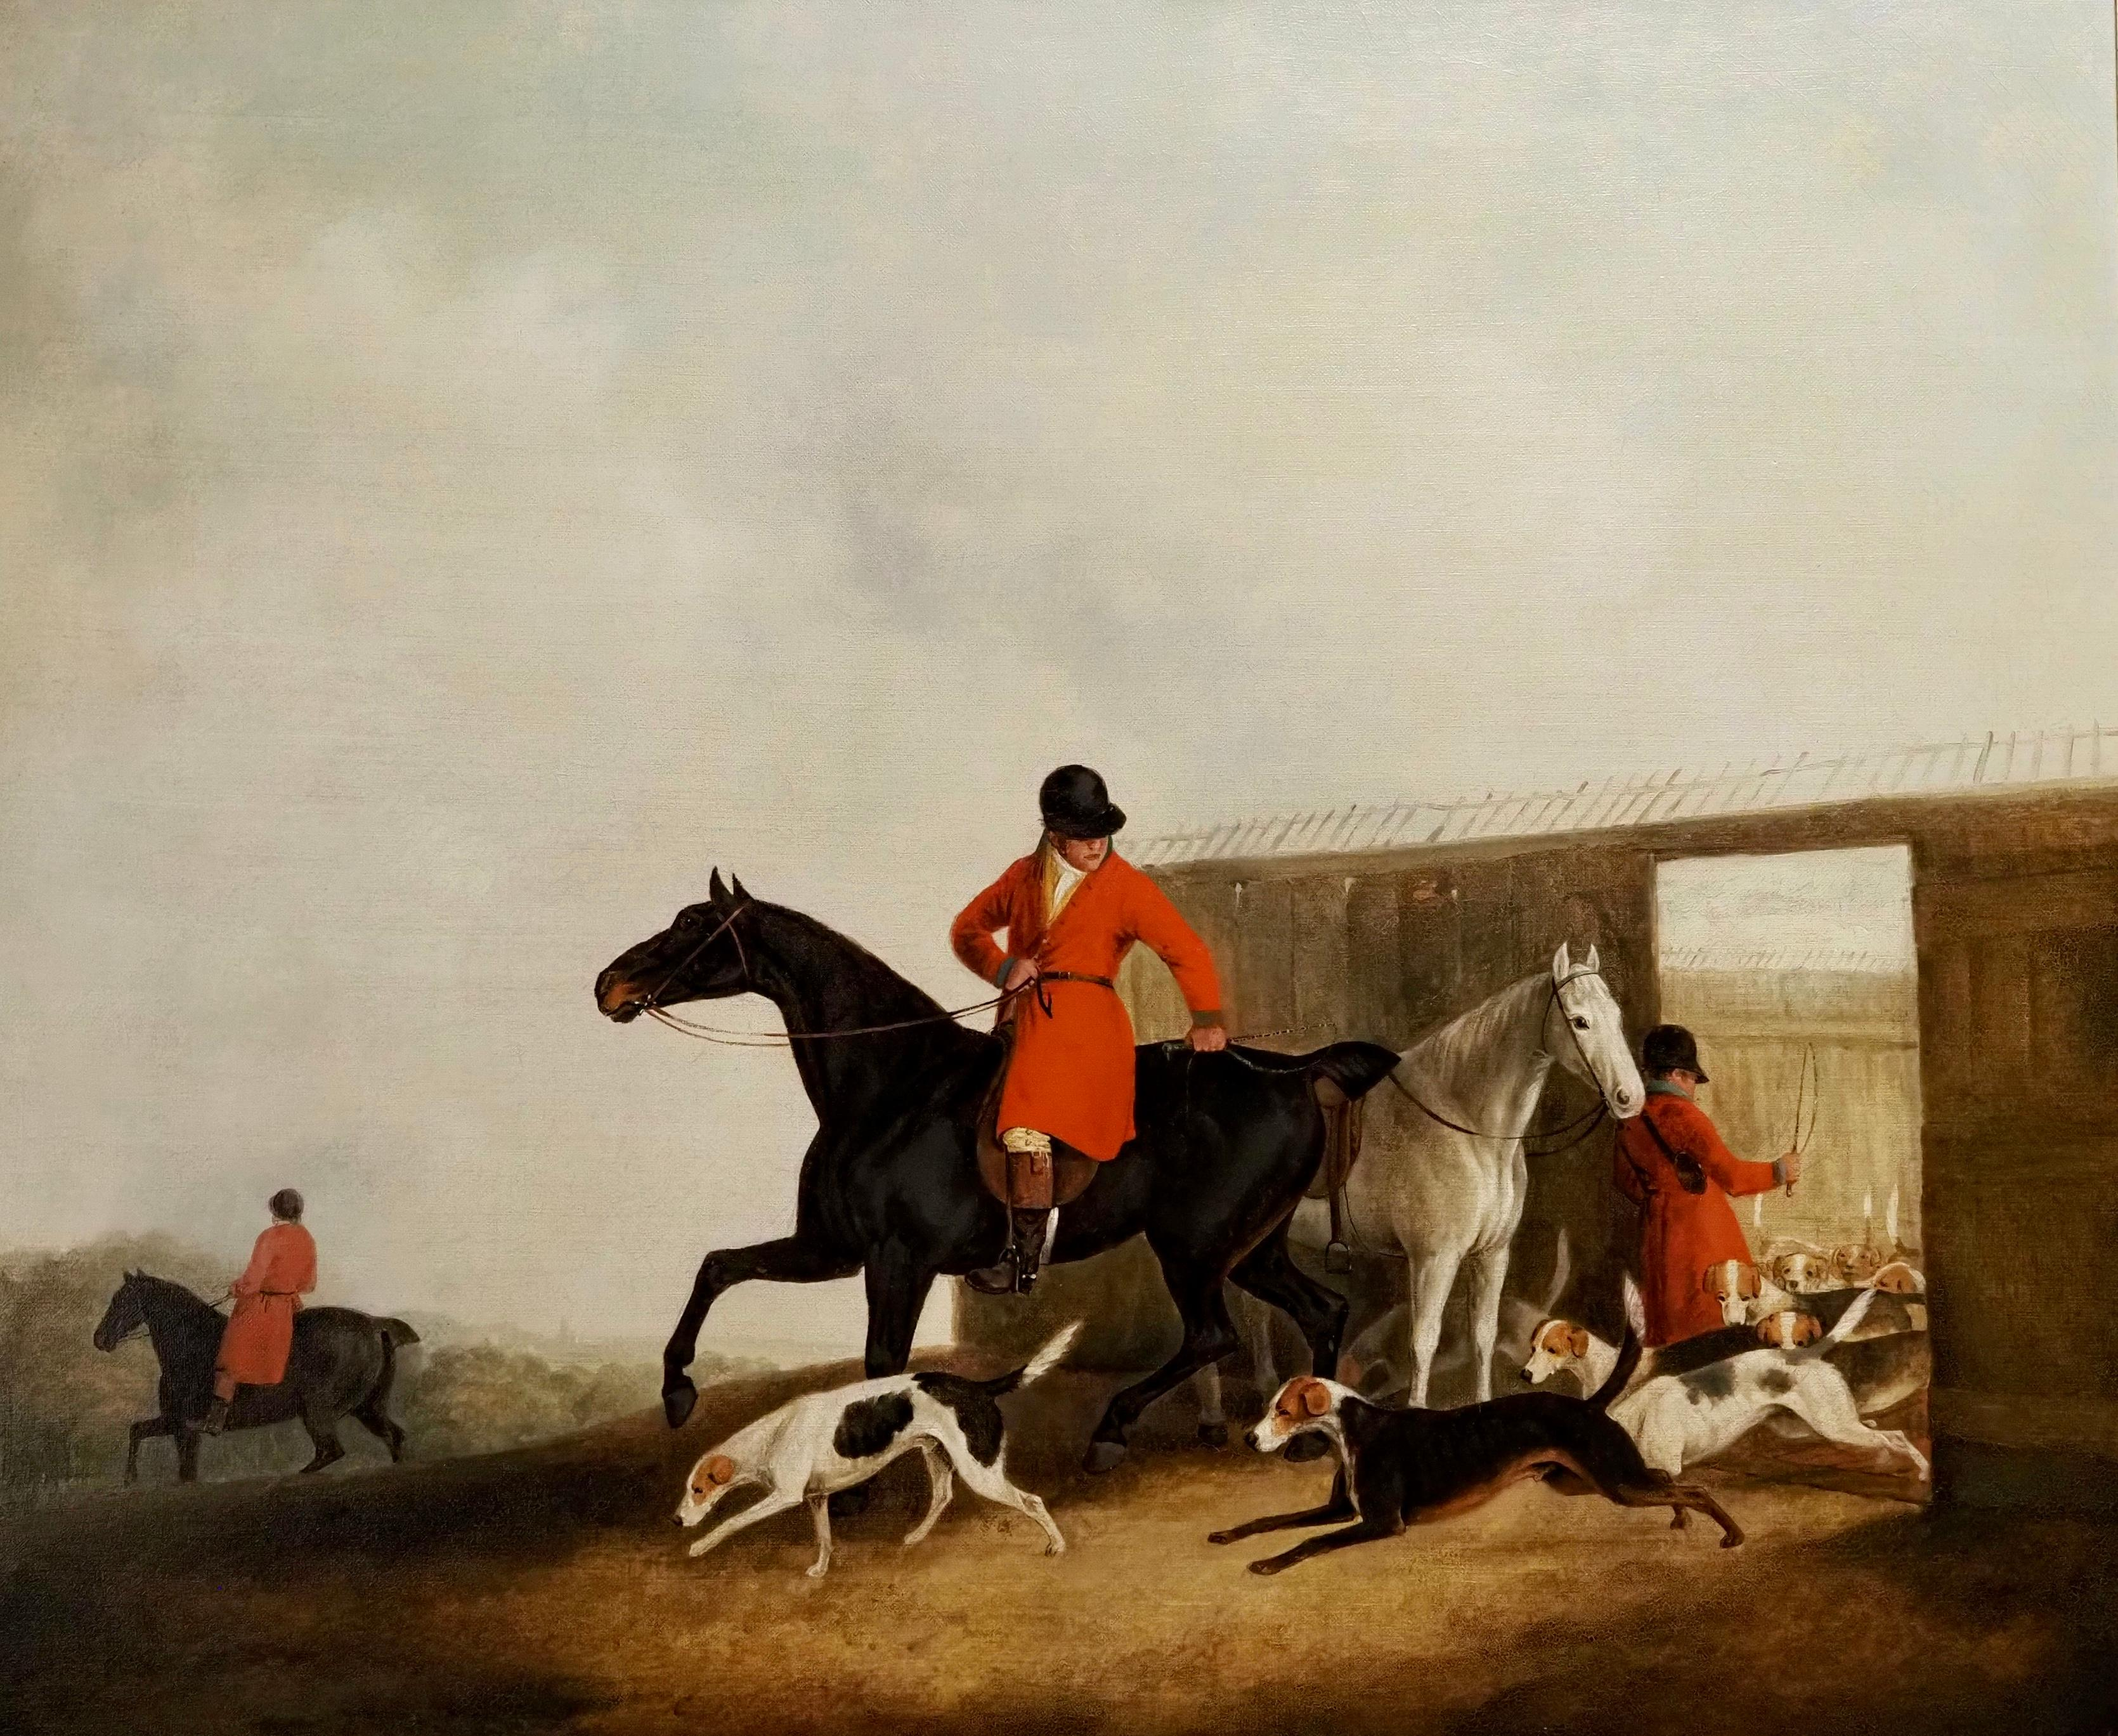 The Hunt moving off - Releasing the hounds